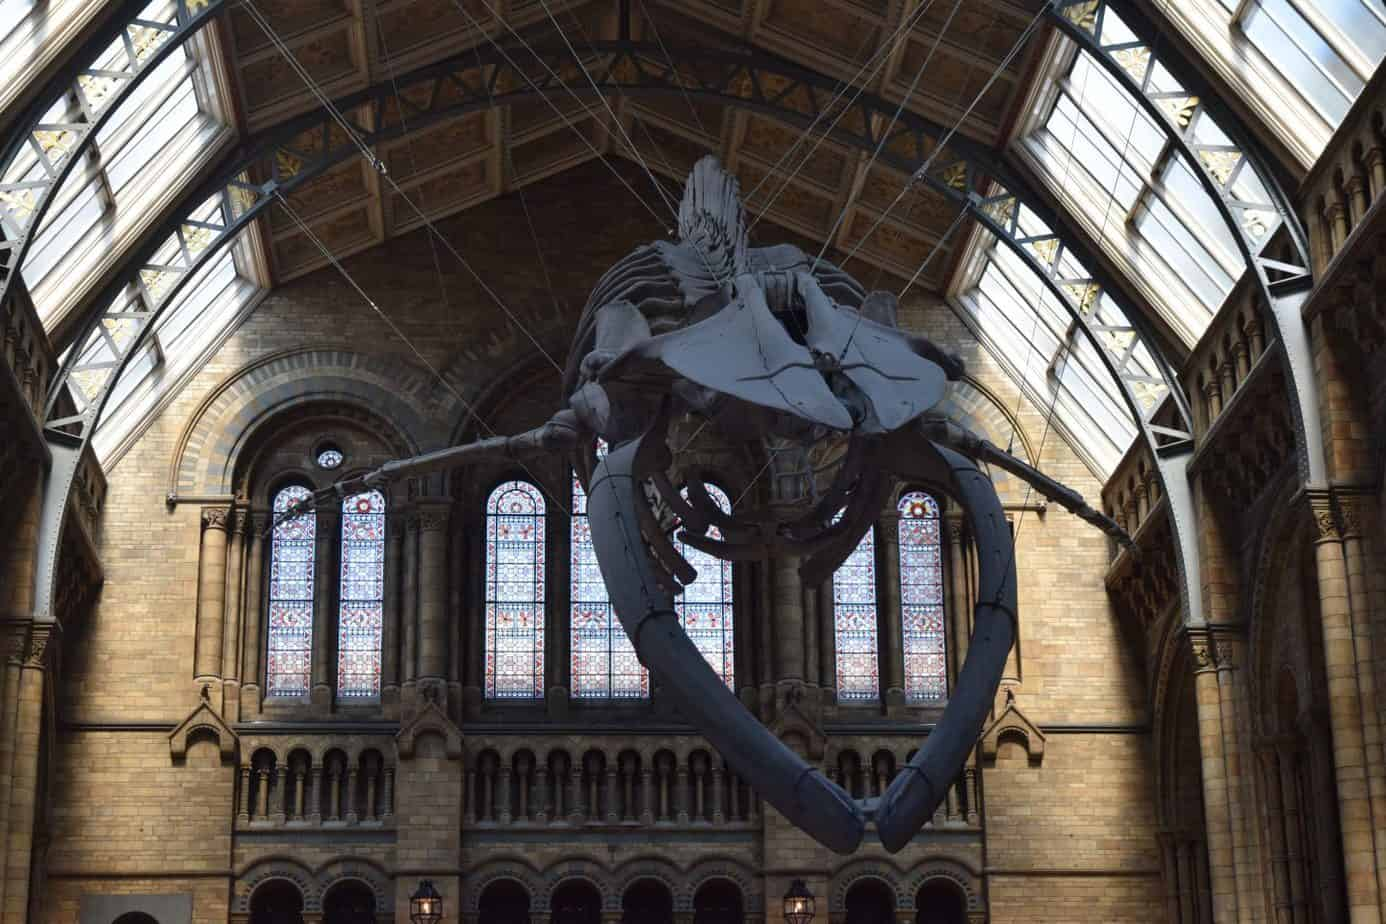 At the natural history museum